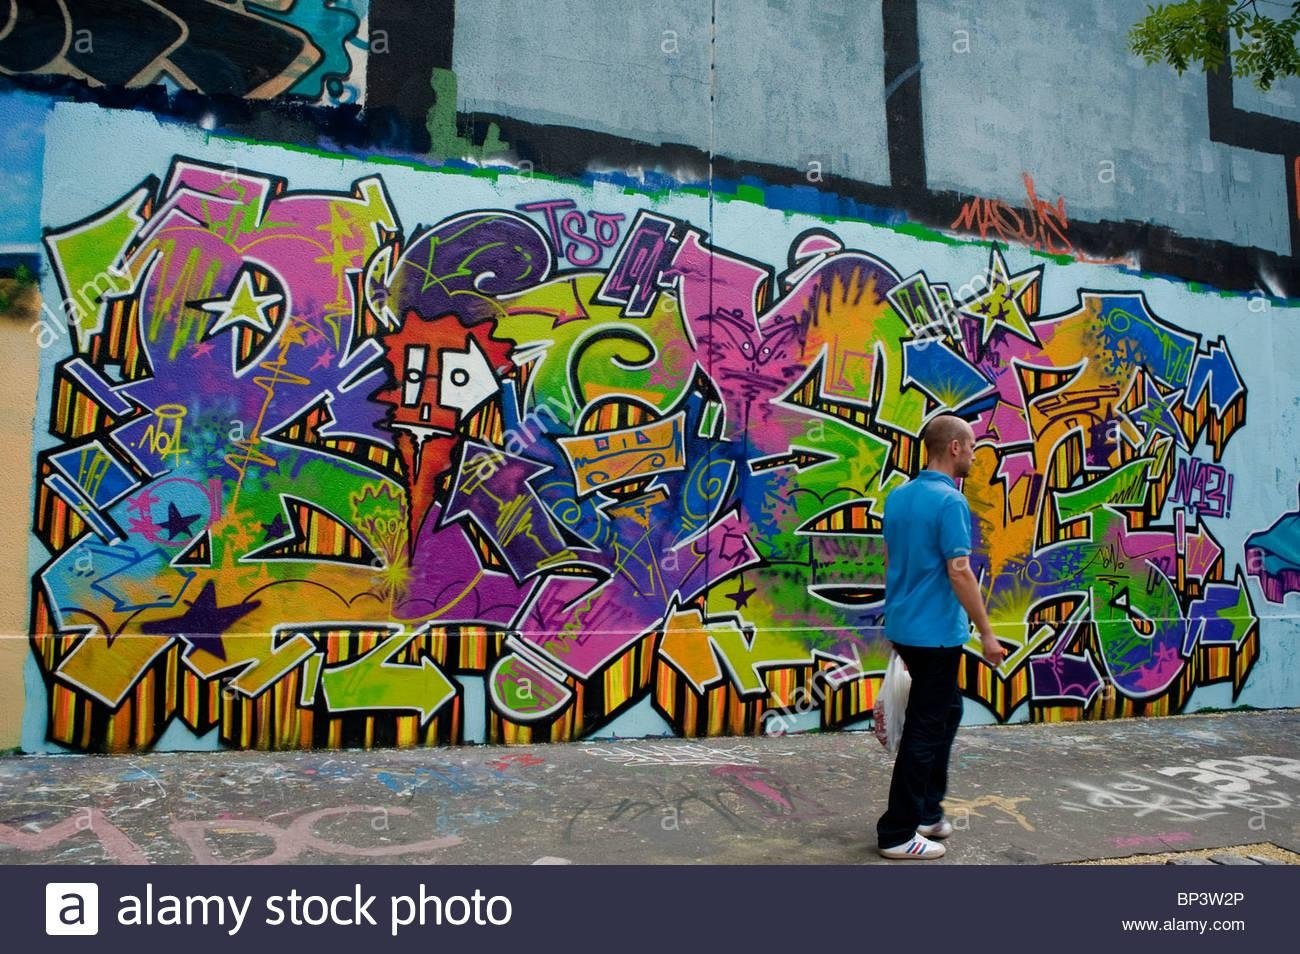 Paris, France, Street Scene, Painted Wall With Spray Paint Pertaining To Street Scene Wall Art (Image 11 of 20)